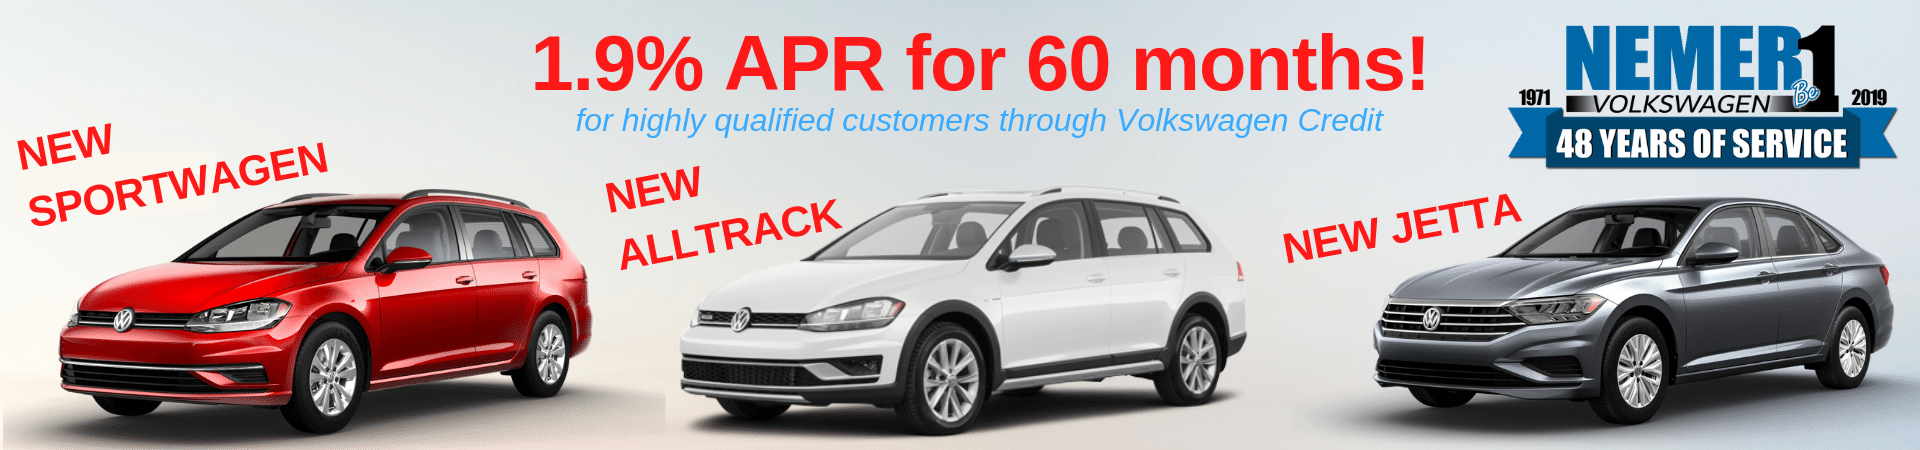 June VW APR Specials